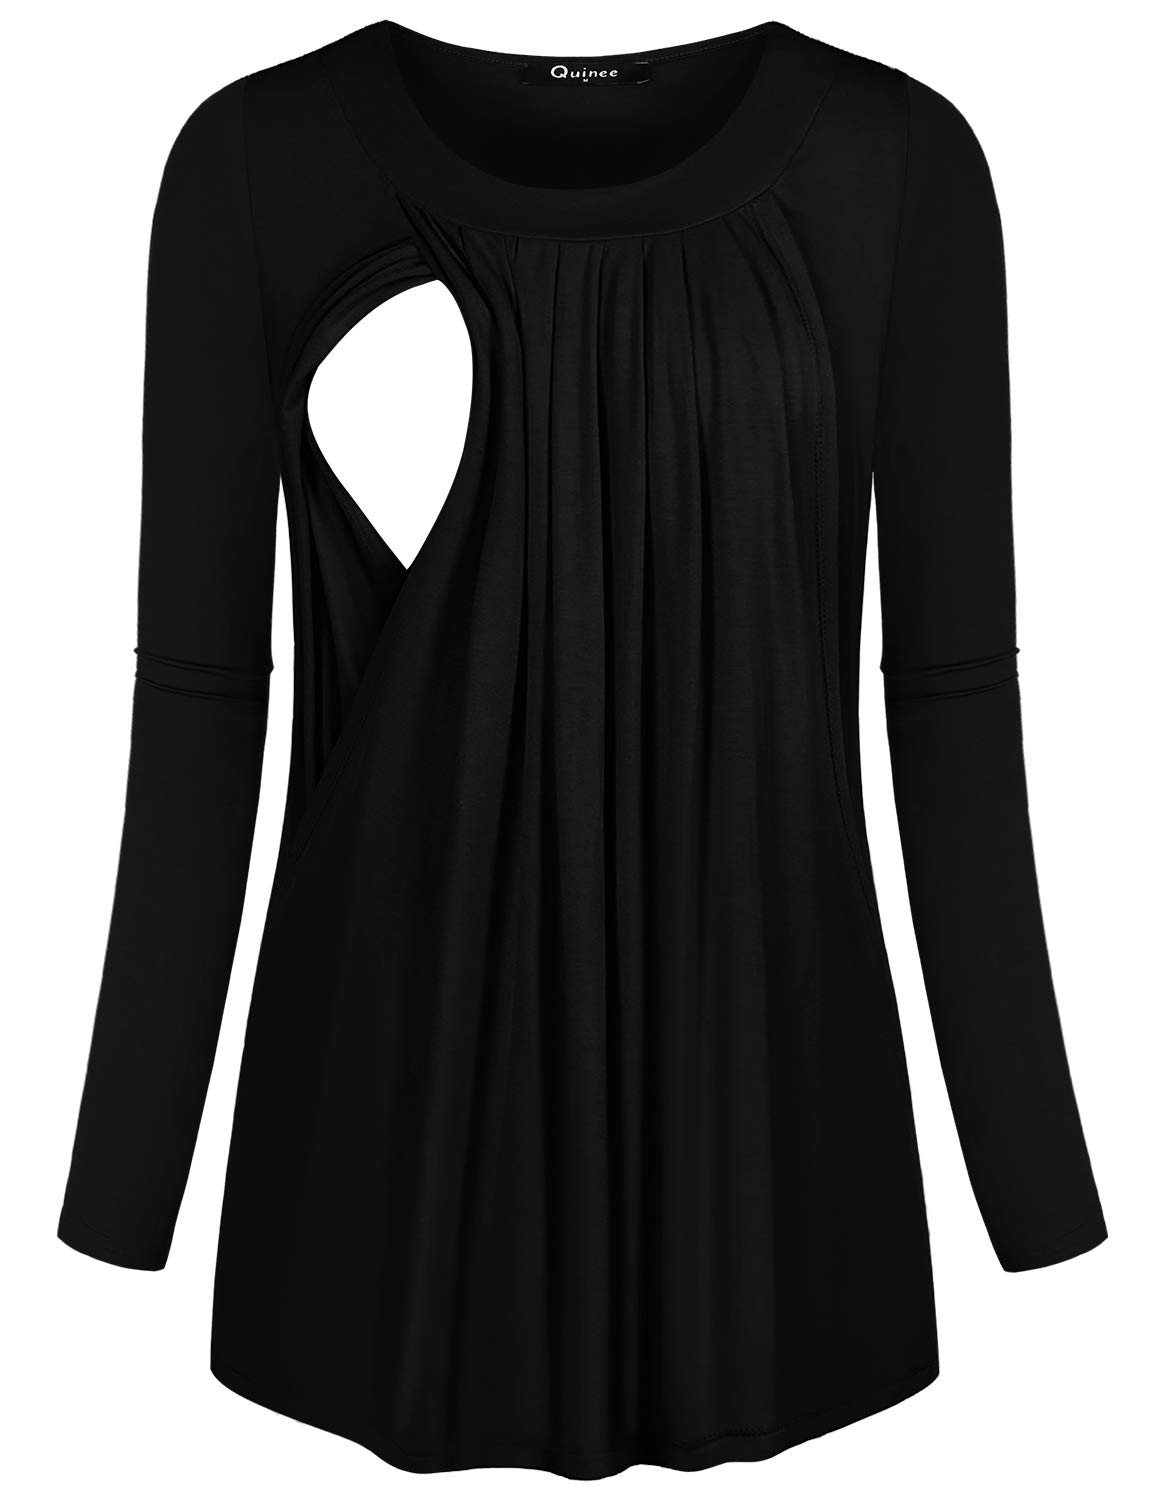 Quinee Nursing Shirts, Women Wide Neck Loose Fitting Ruffle Long Sleeve Curved Hemline Easy Fitting Fall Cotton Blend Solid Color Smooth Material Well Made Cozy Maternity Breastfeeding Tops Black L